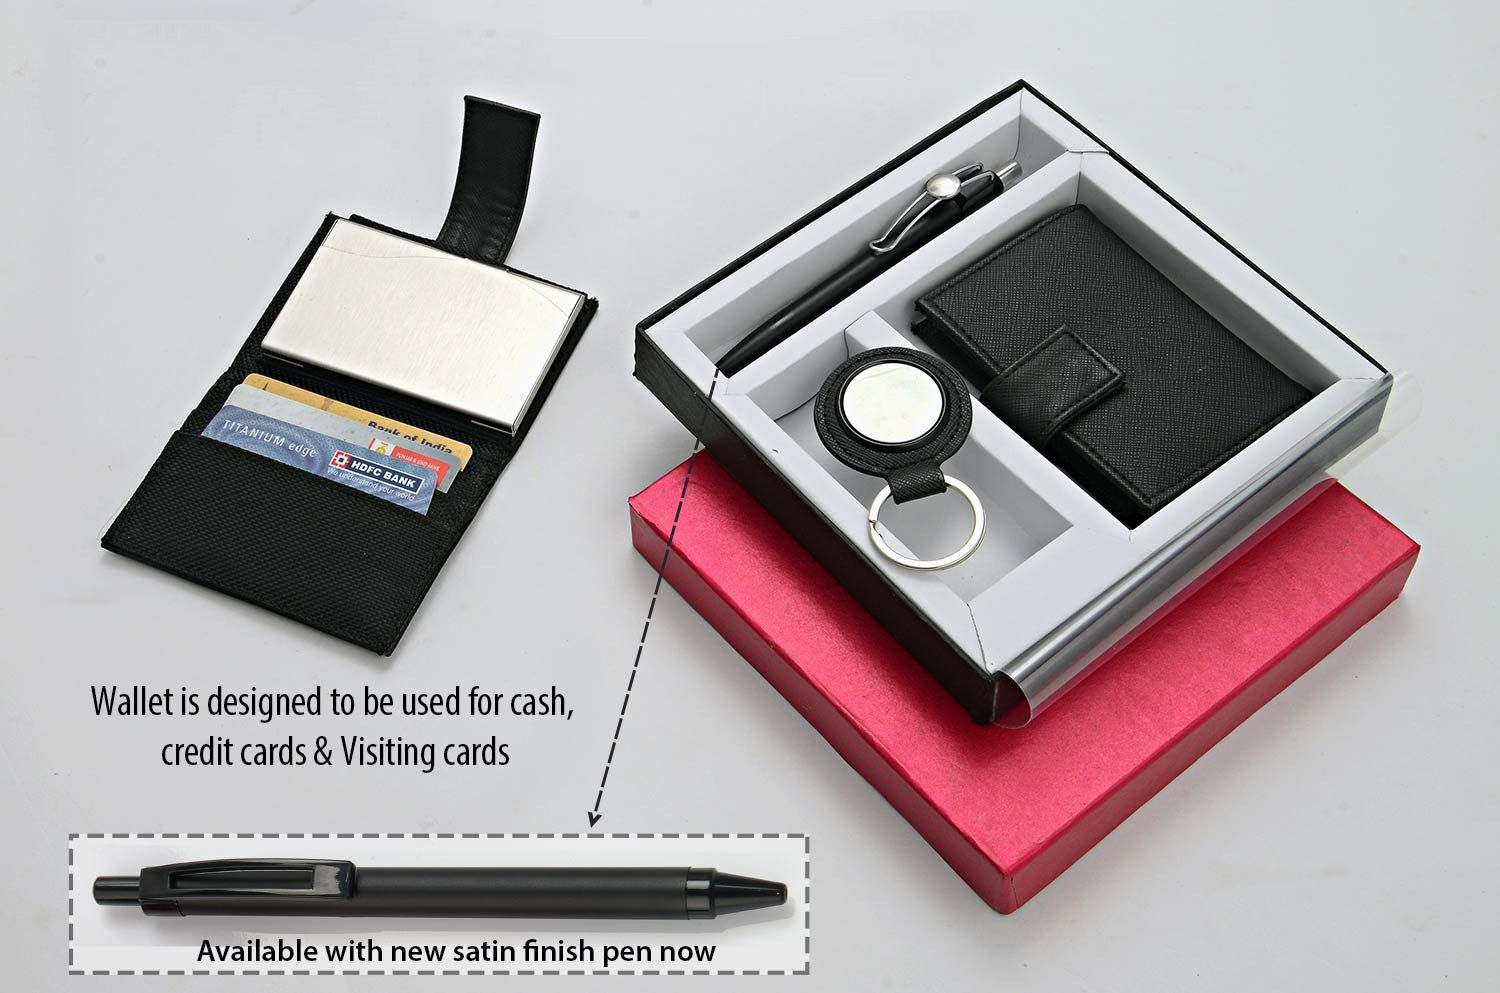 Power Plus Set Of 3 : Round Pu Keychain (J68), 3 In 1 Wallet (For Cash, Cards And Visiting Cards) & Highway Satin Pen (L131) Q16